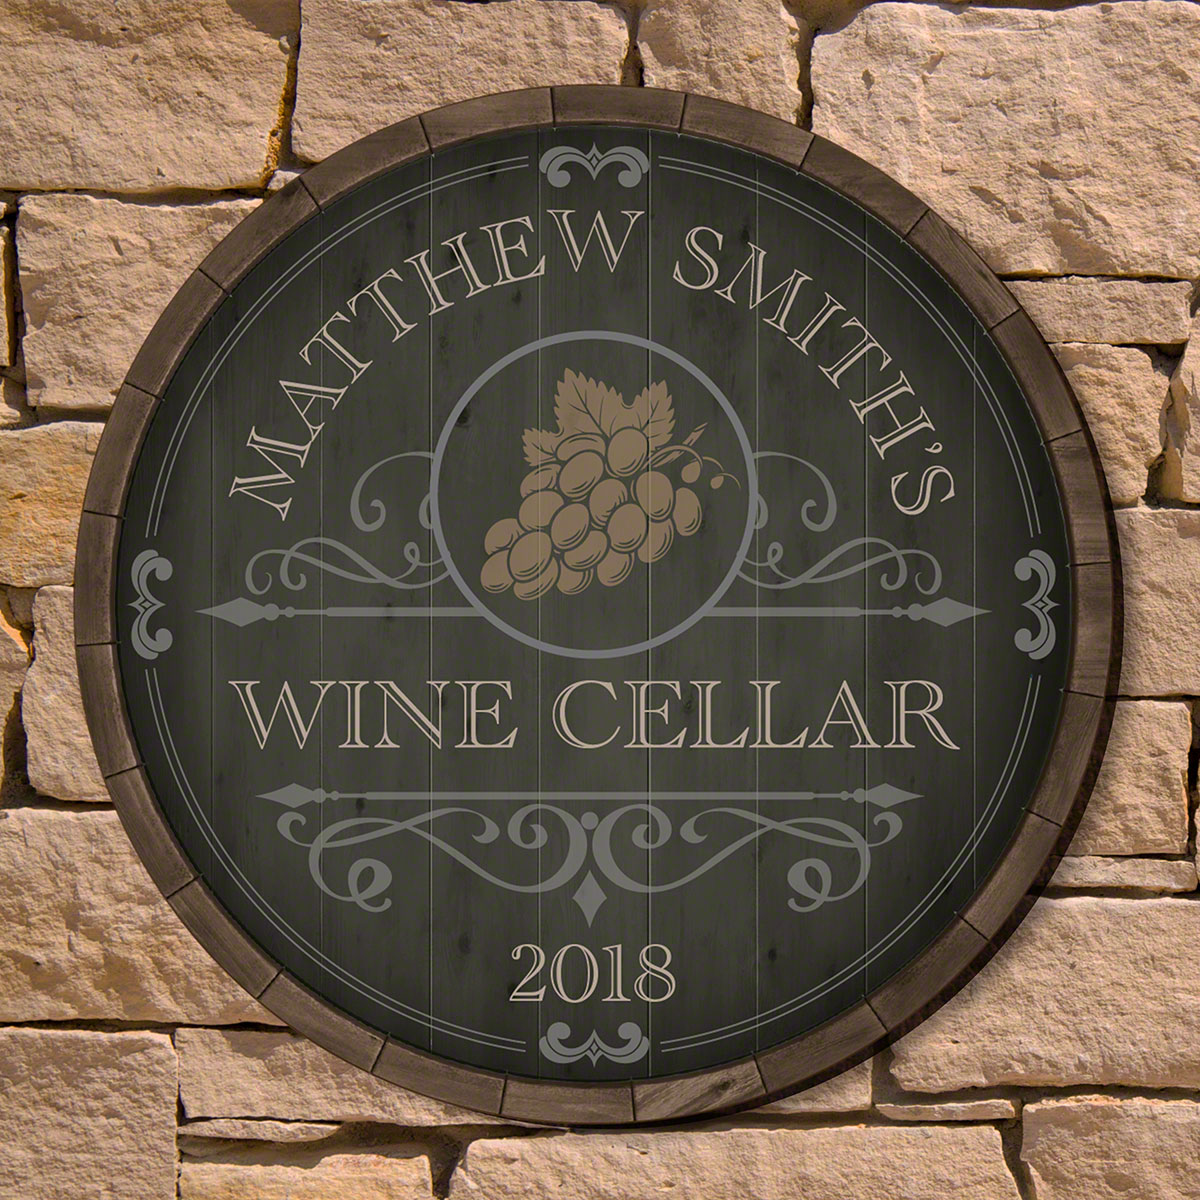 & Beauteous Barrel Personalized Wine Cellar Sign (2 Designs)